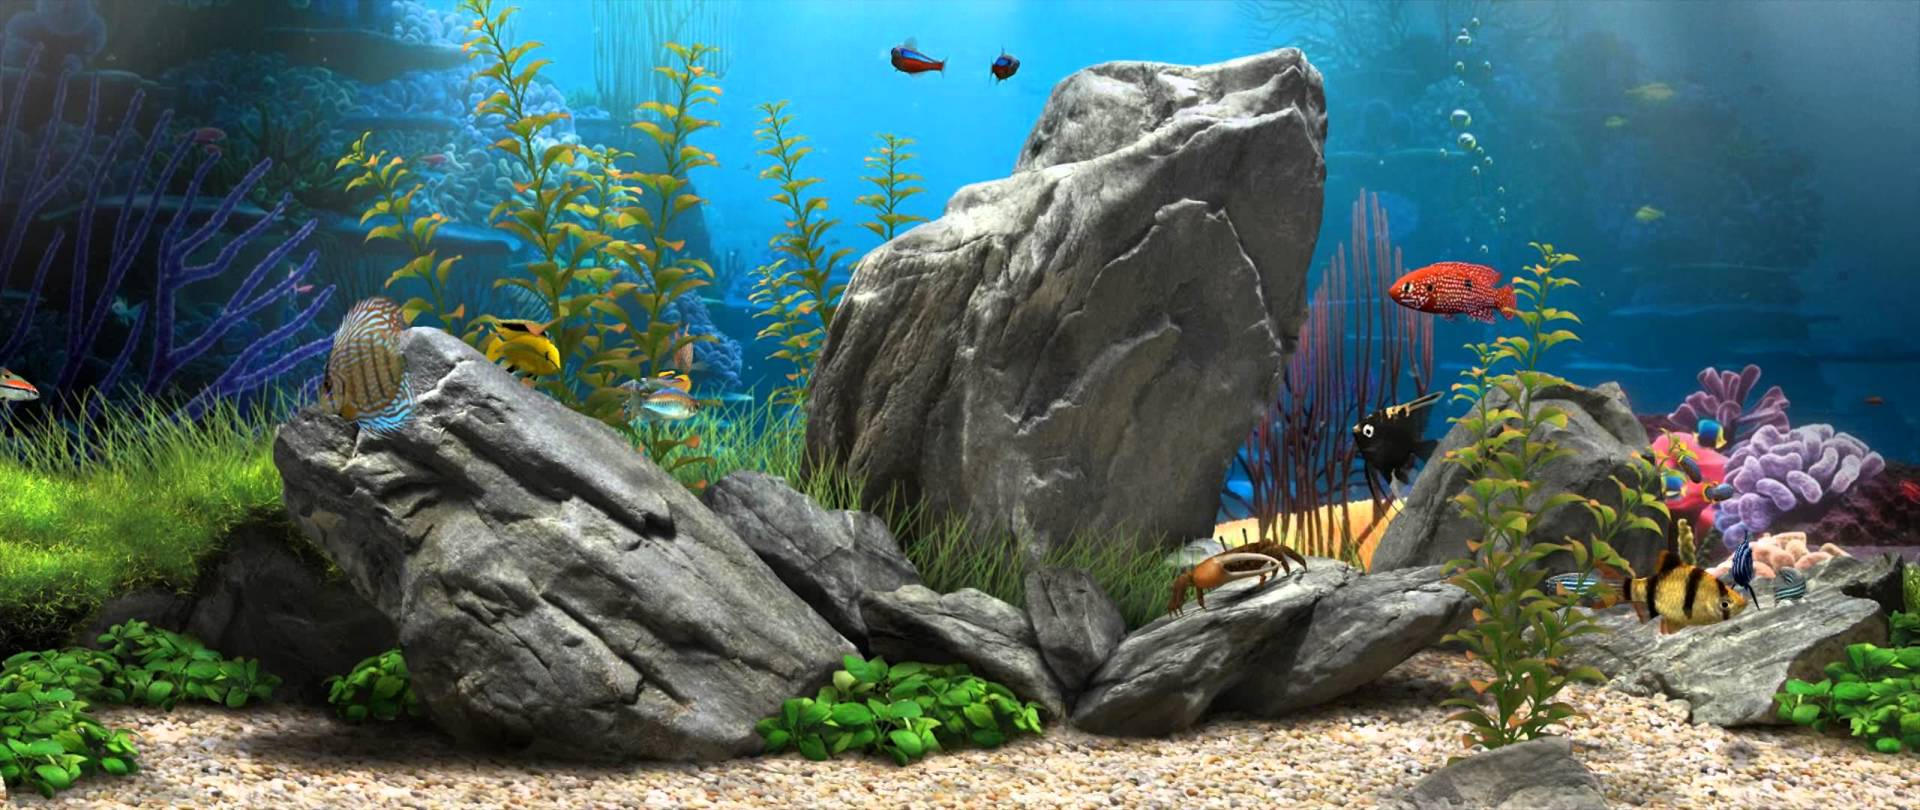 Dream Aquarium   219 [Live Wallpaper]   1080p 1920x810